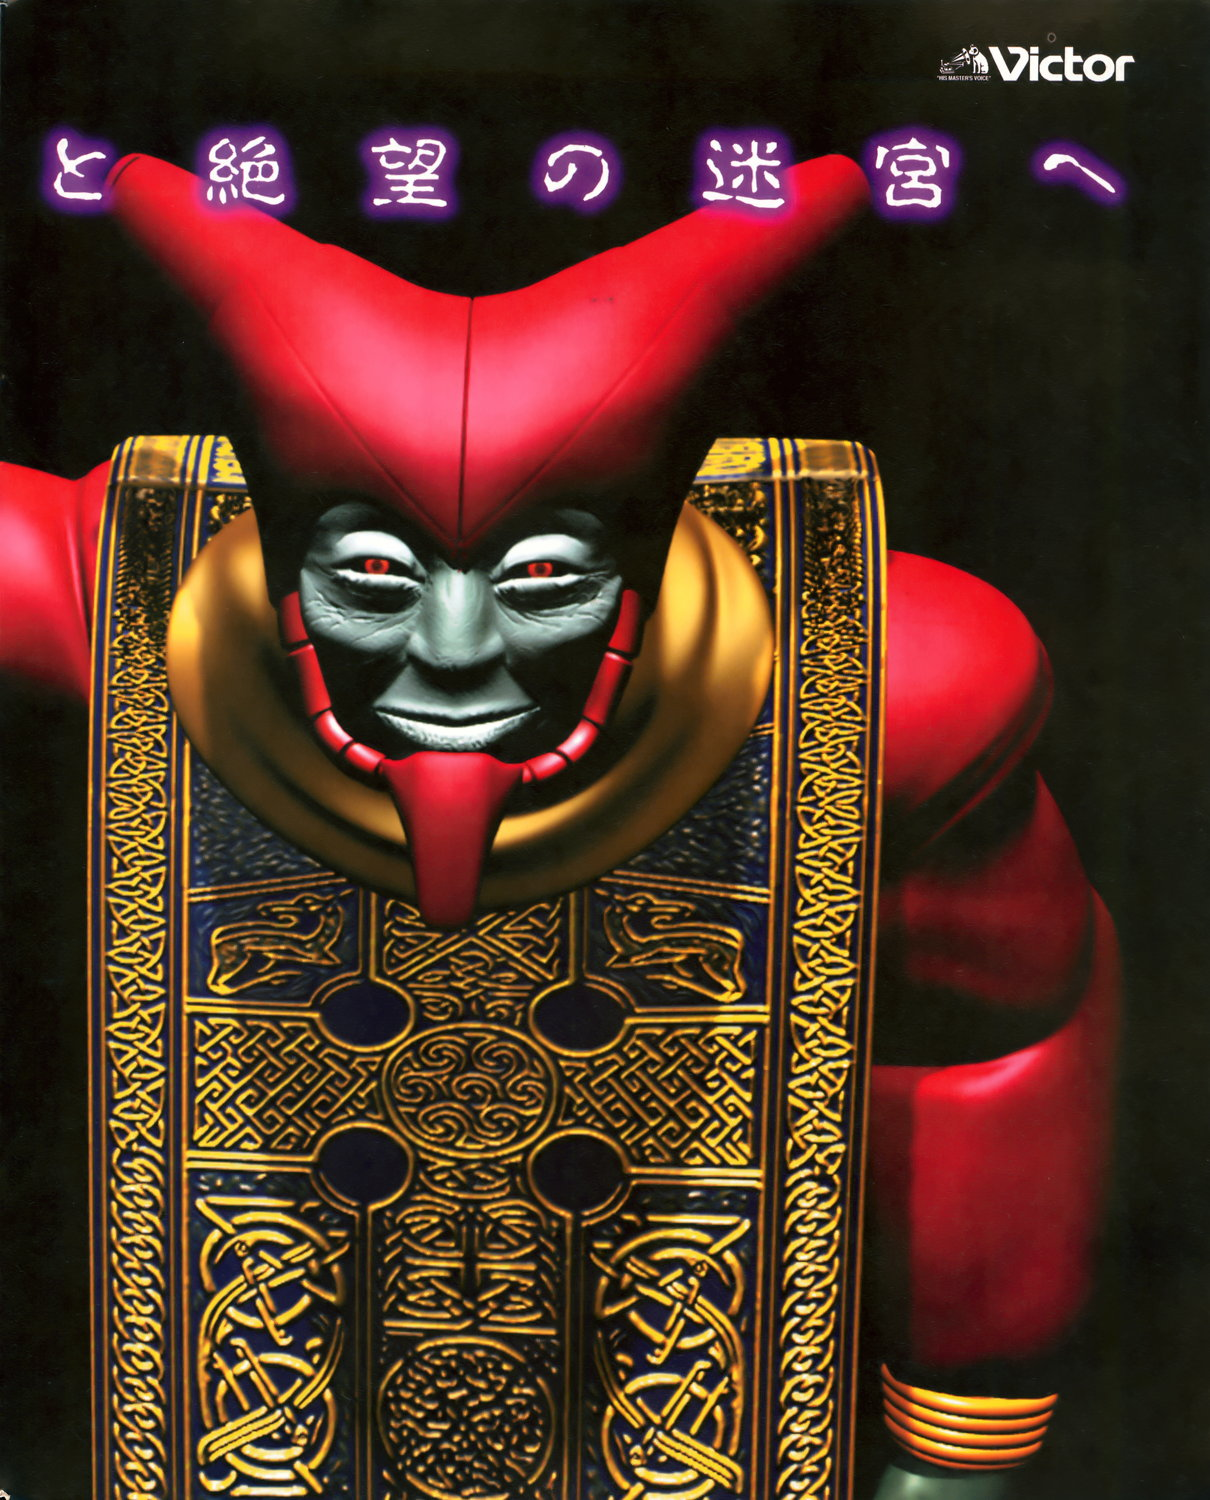 Dungeon Master Nexus Advertisement published in Japanese magazine 'Sega Saturn Magazine', Vol 7 13 March 1998, Page 3